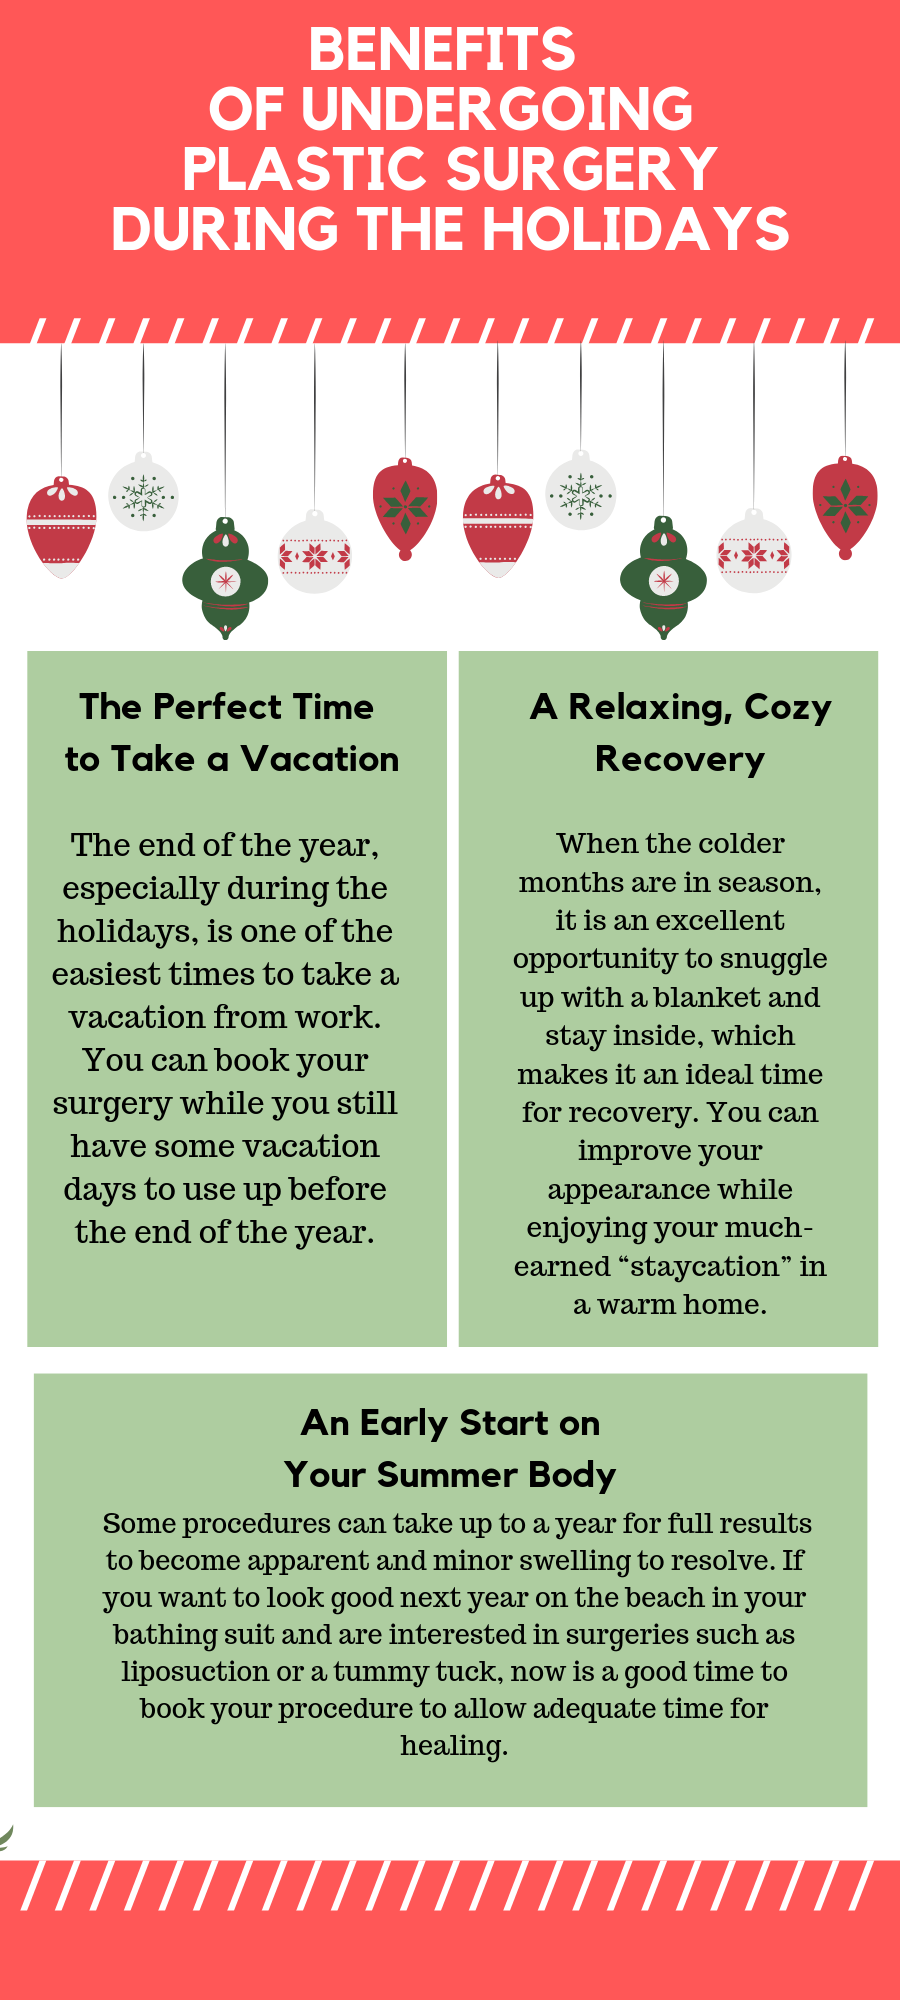 Benefits of Undergoing Plastic Surgery Before the Holidays Infographic